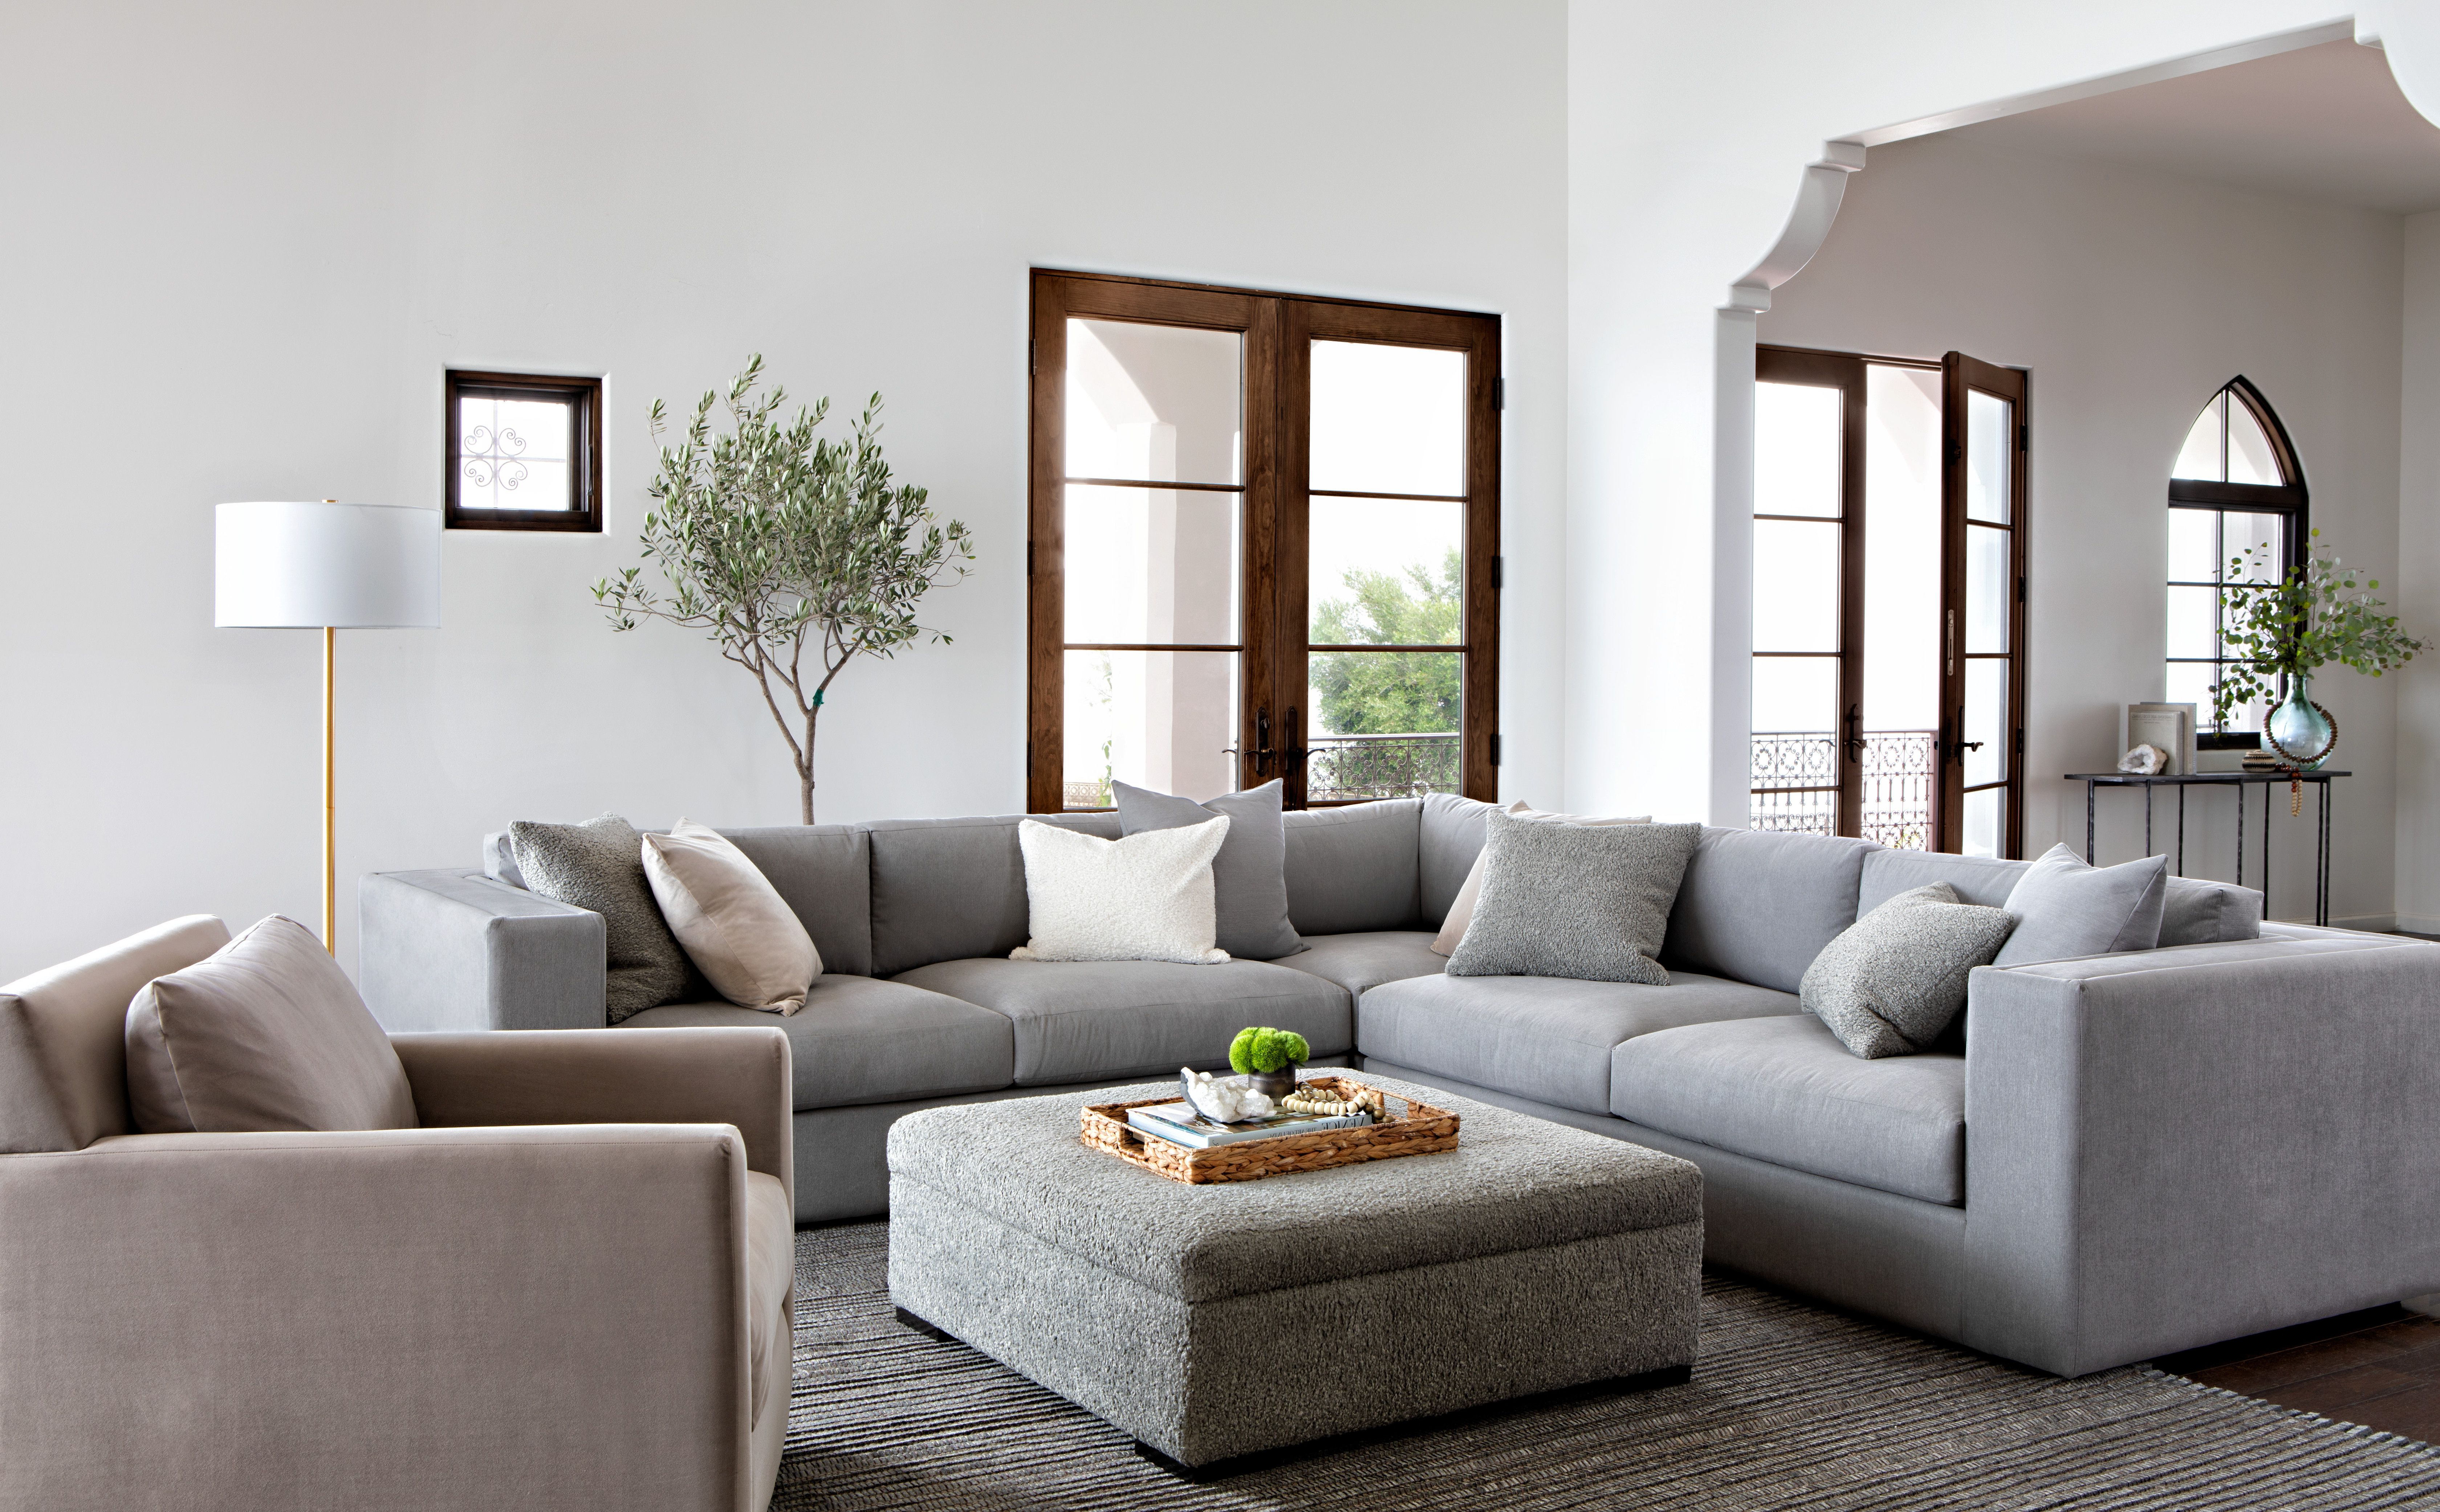 Well Known Whitley 3 Piece Sectionals By Nate Berkus And Jeremiah Brent Intended For Whitley 3 Piece Sectionalnate Berkus And Jeremiah Brent In (View 2 of 20)